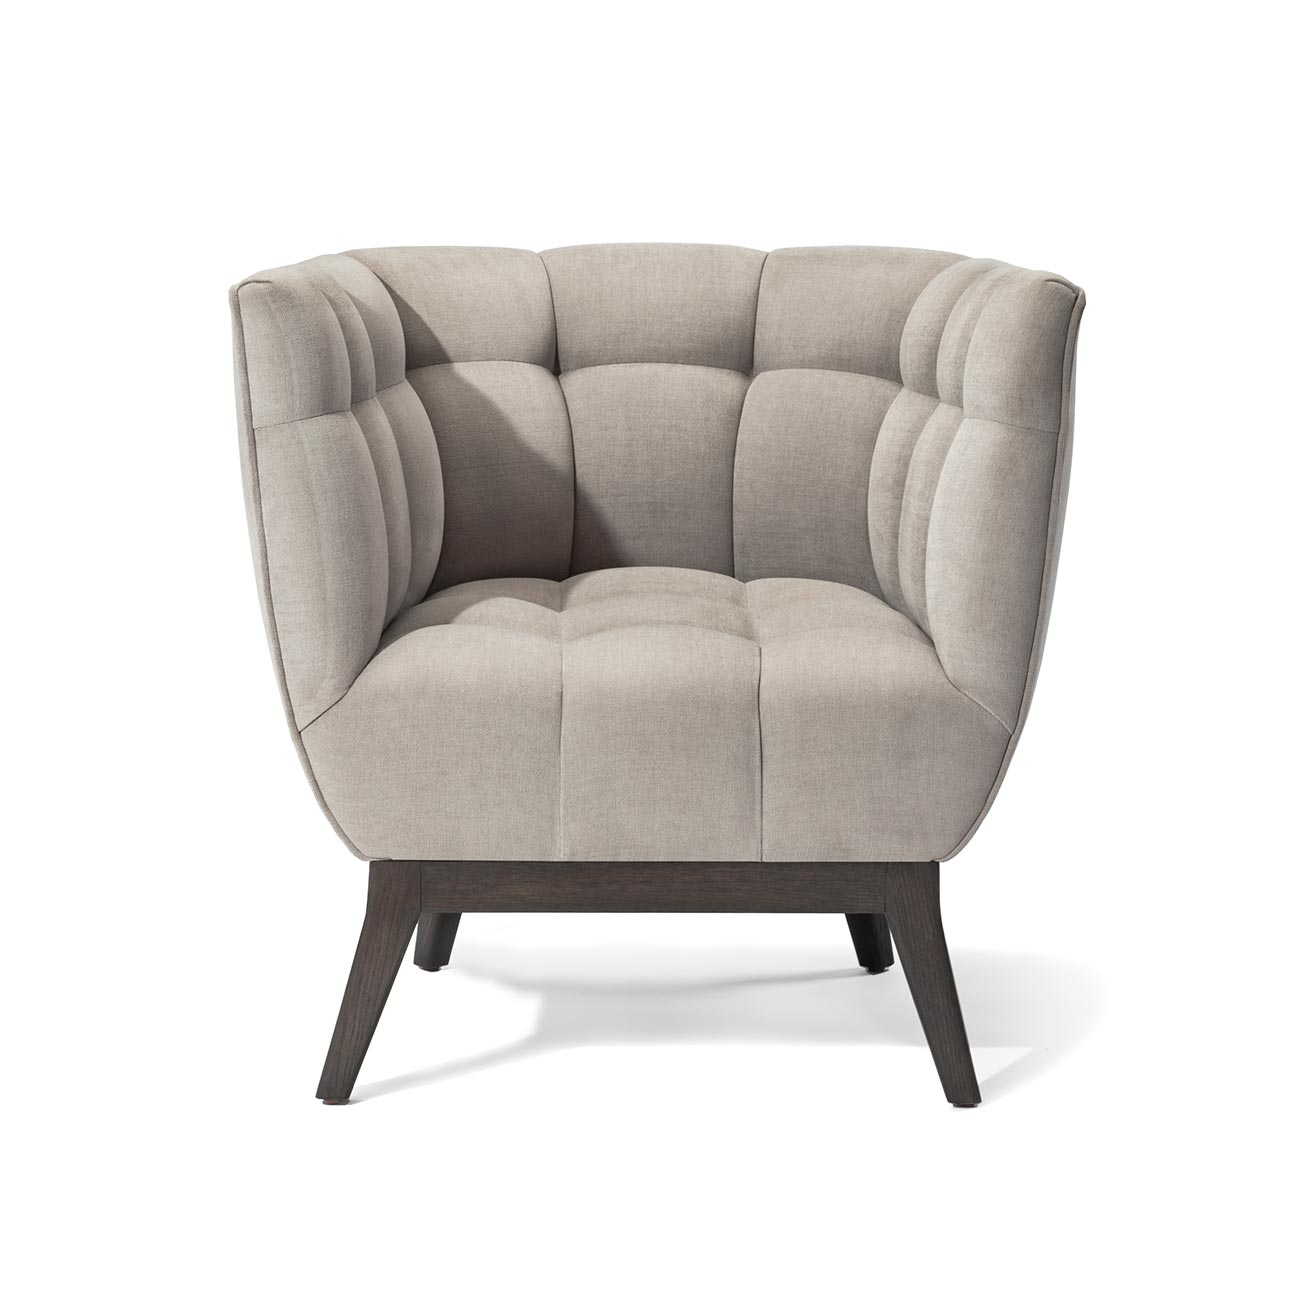 AM3131 LOUNGE CHAIR